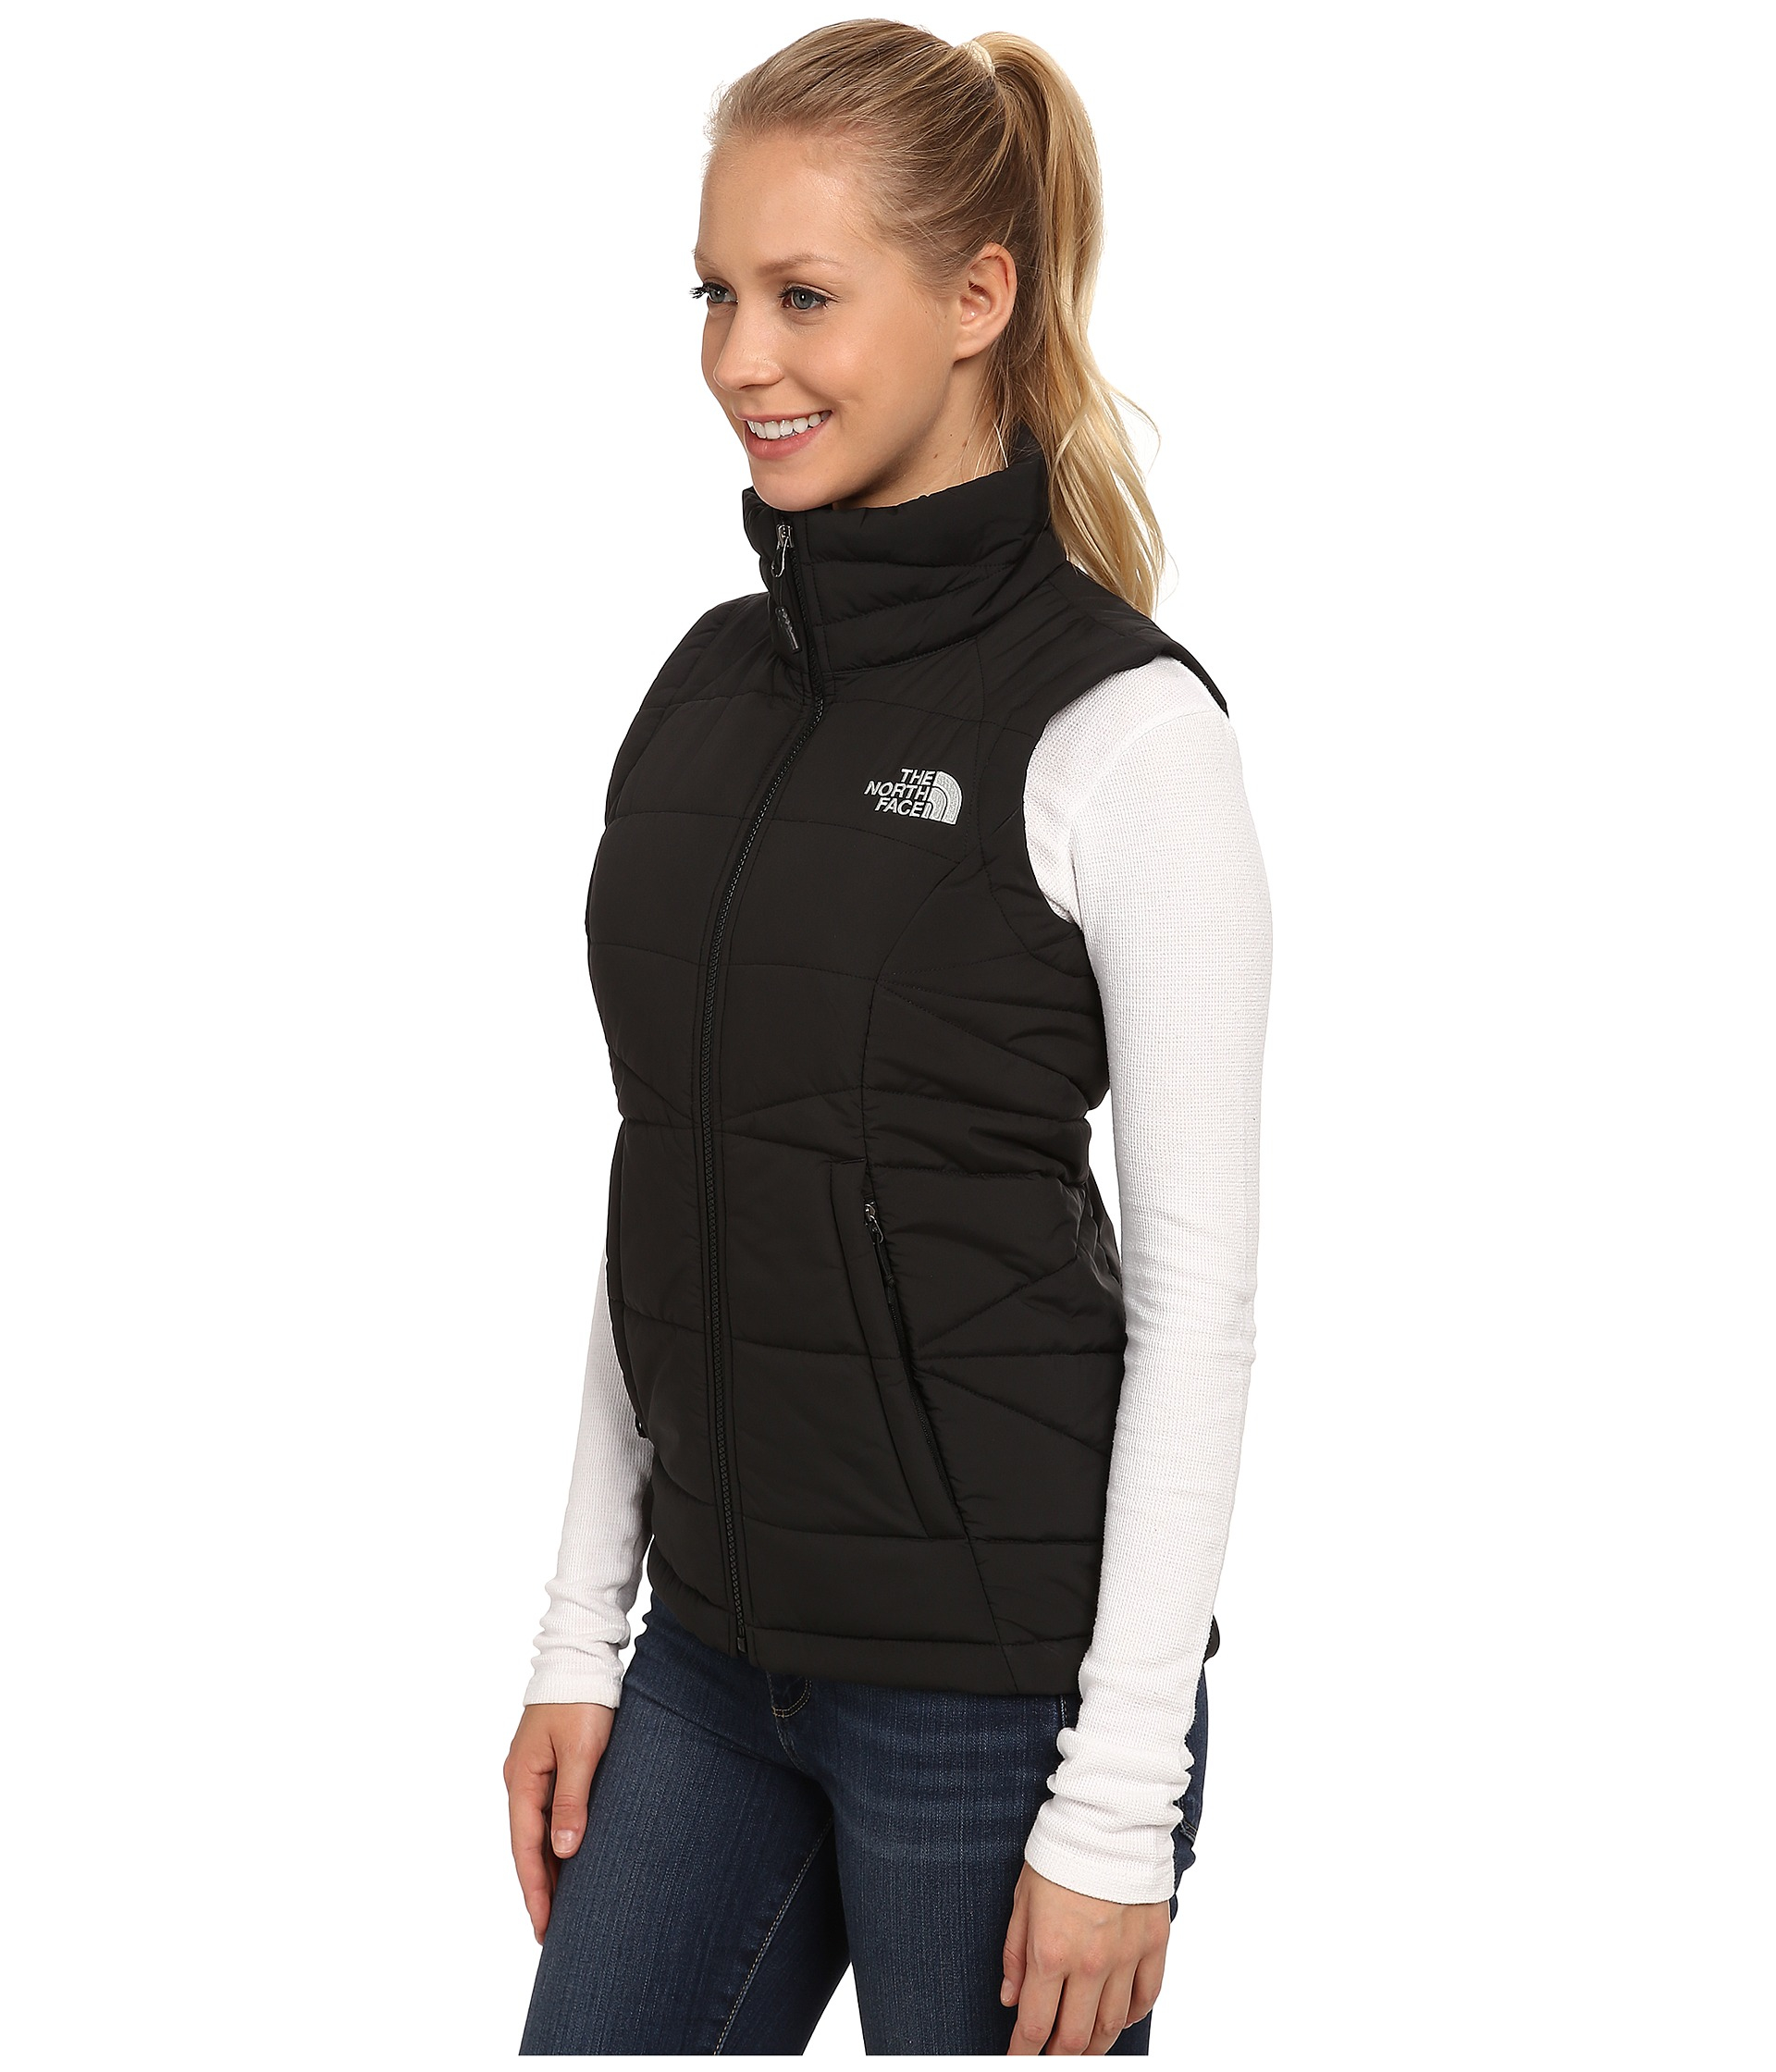 ad5a0c6e71 promo code for lyst the north face roamer vest in black bbe4a 4953a